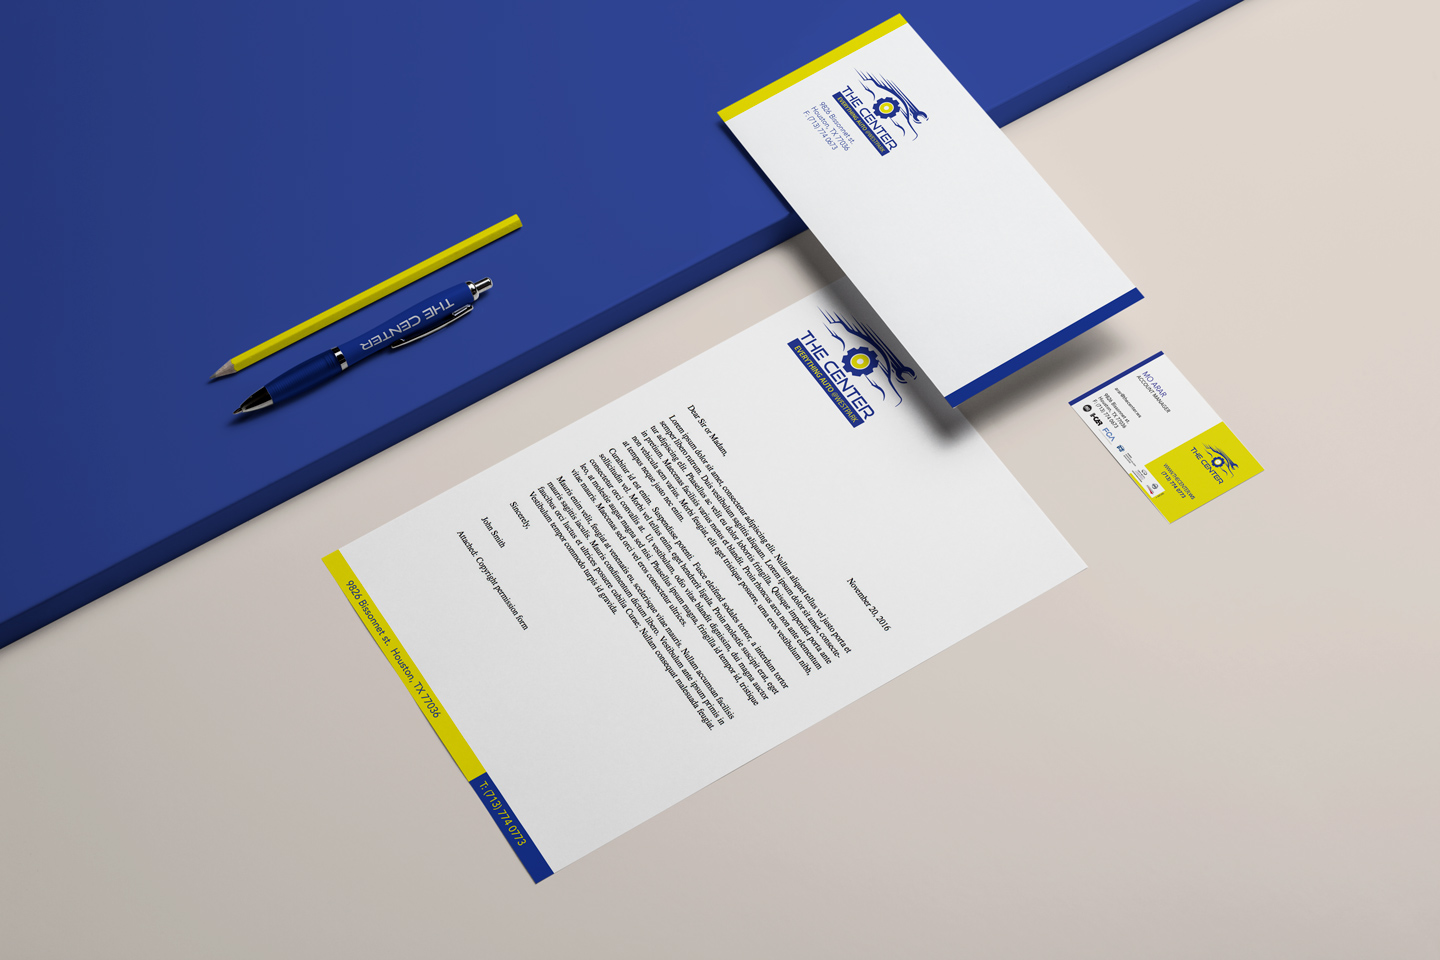 corporate identity with business card, letterhead, envelope and pen design